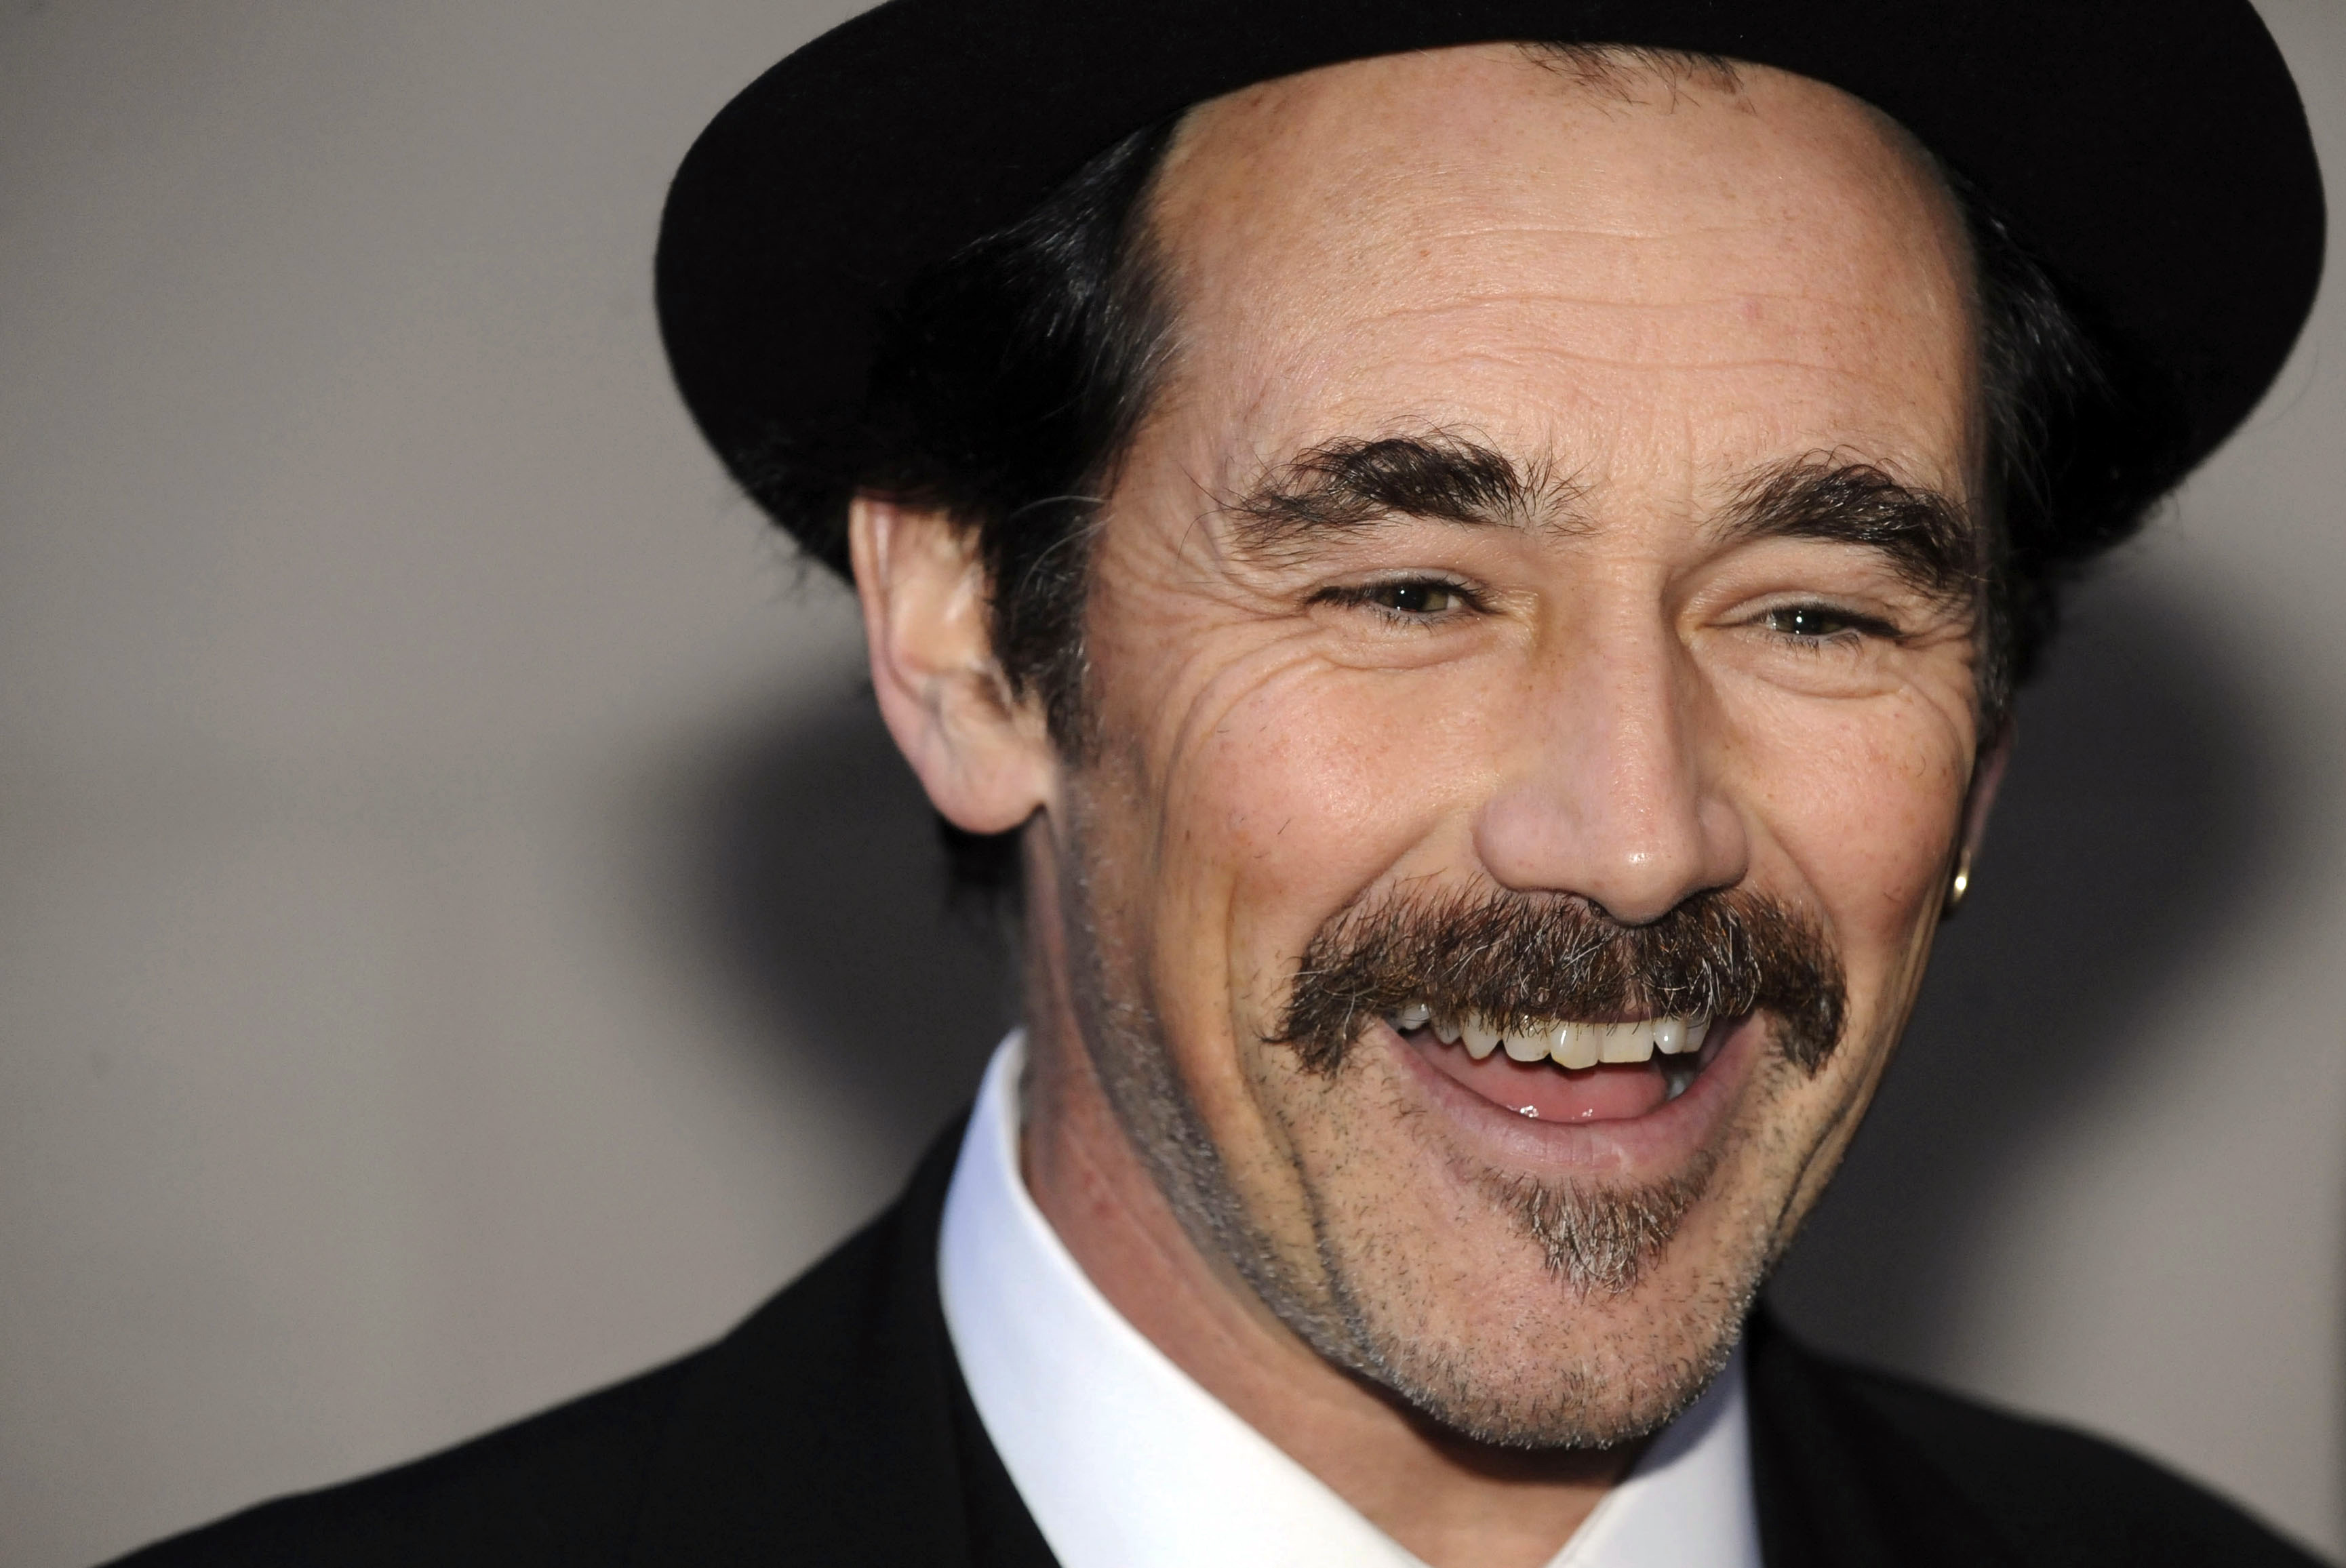 British actor Mark Rylance talks to the media as he arrives to attend the 2010 Laurence Olivier Awards in central London on March 21, 2010